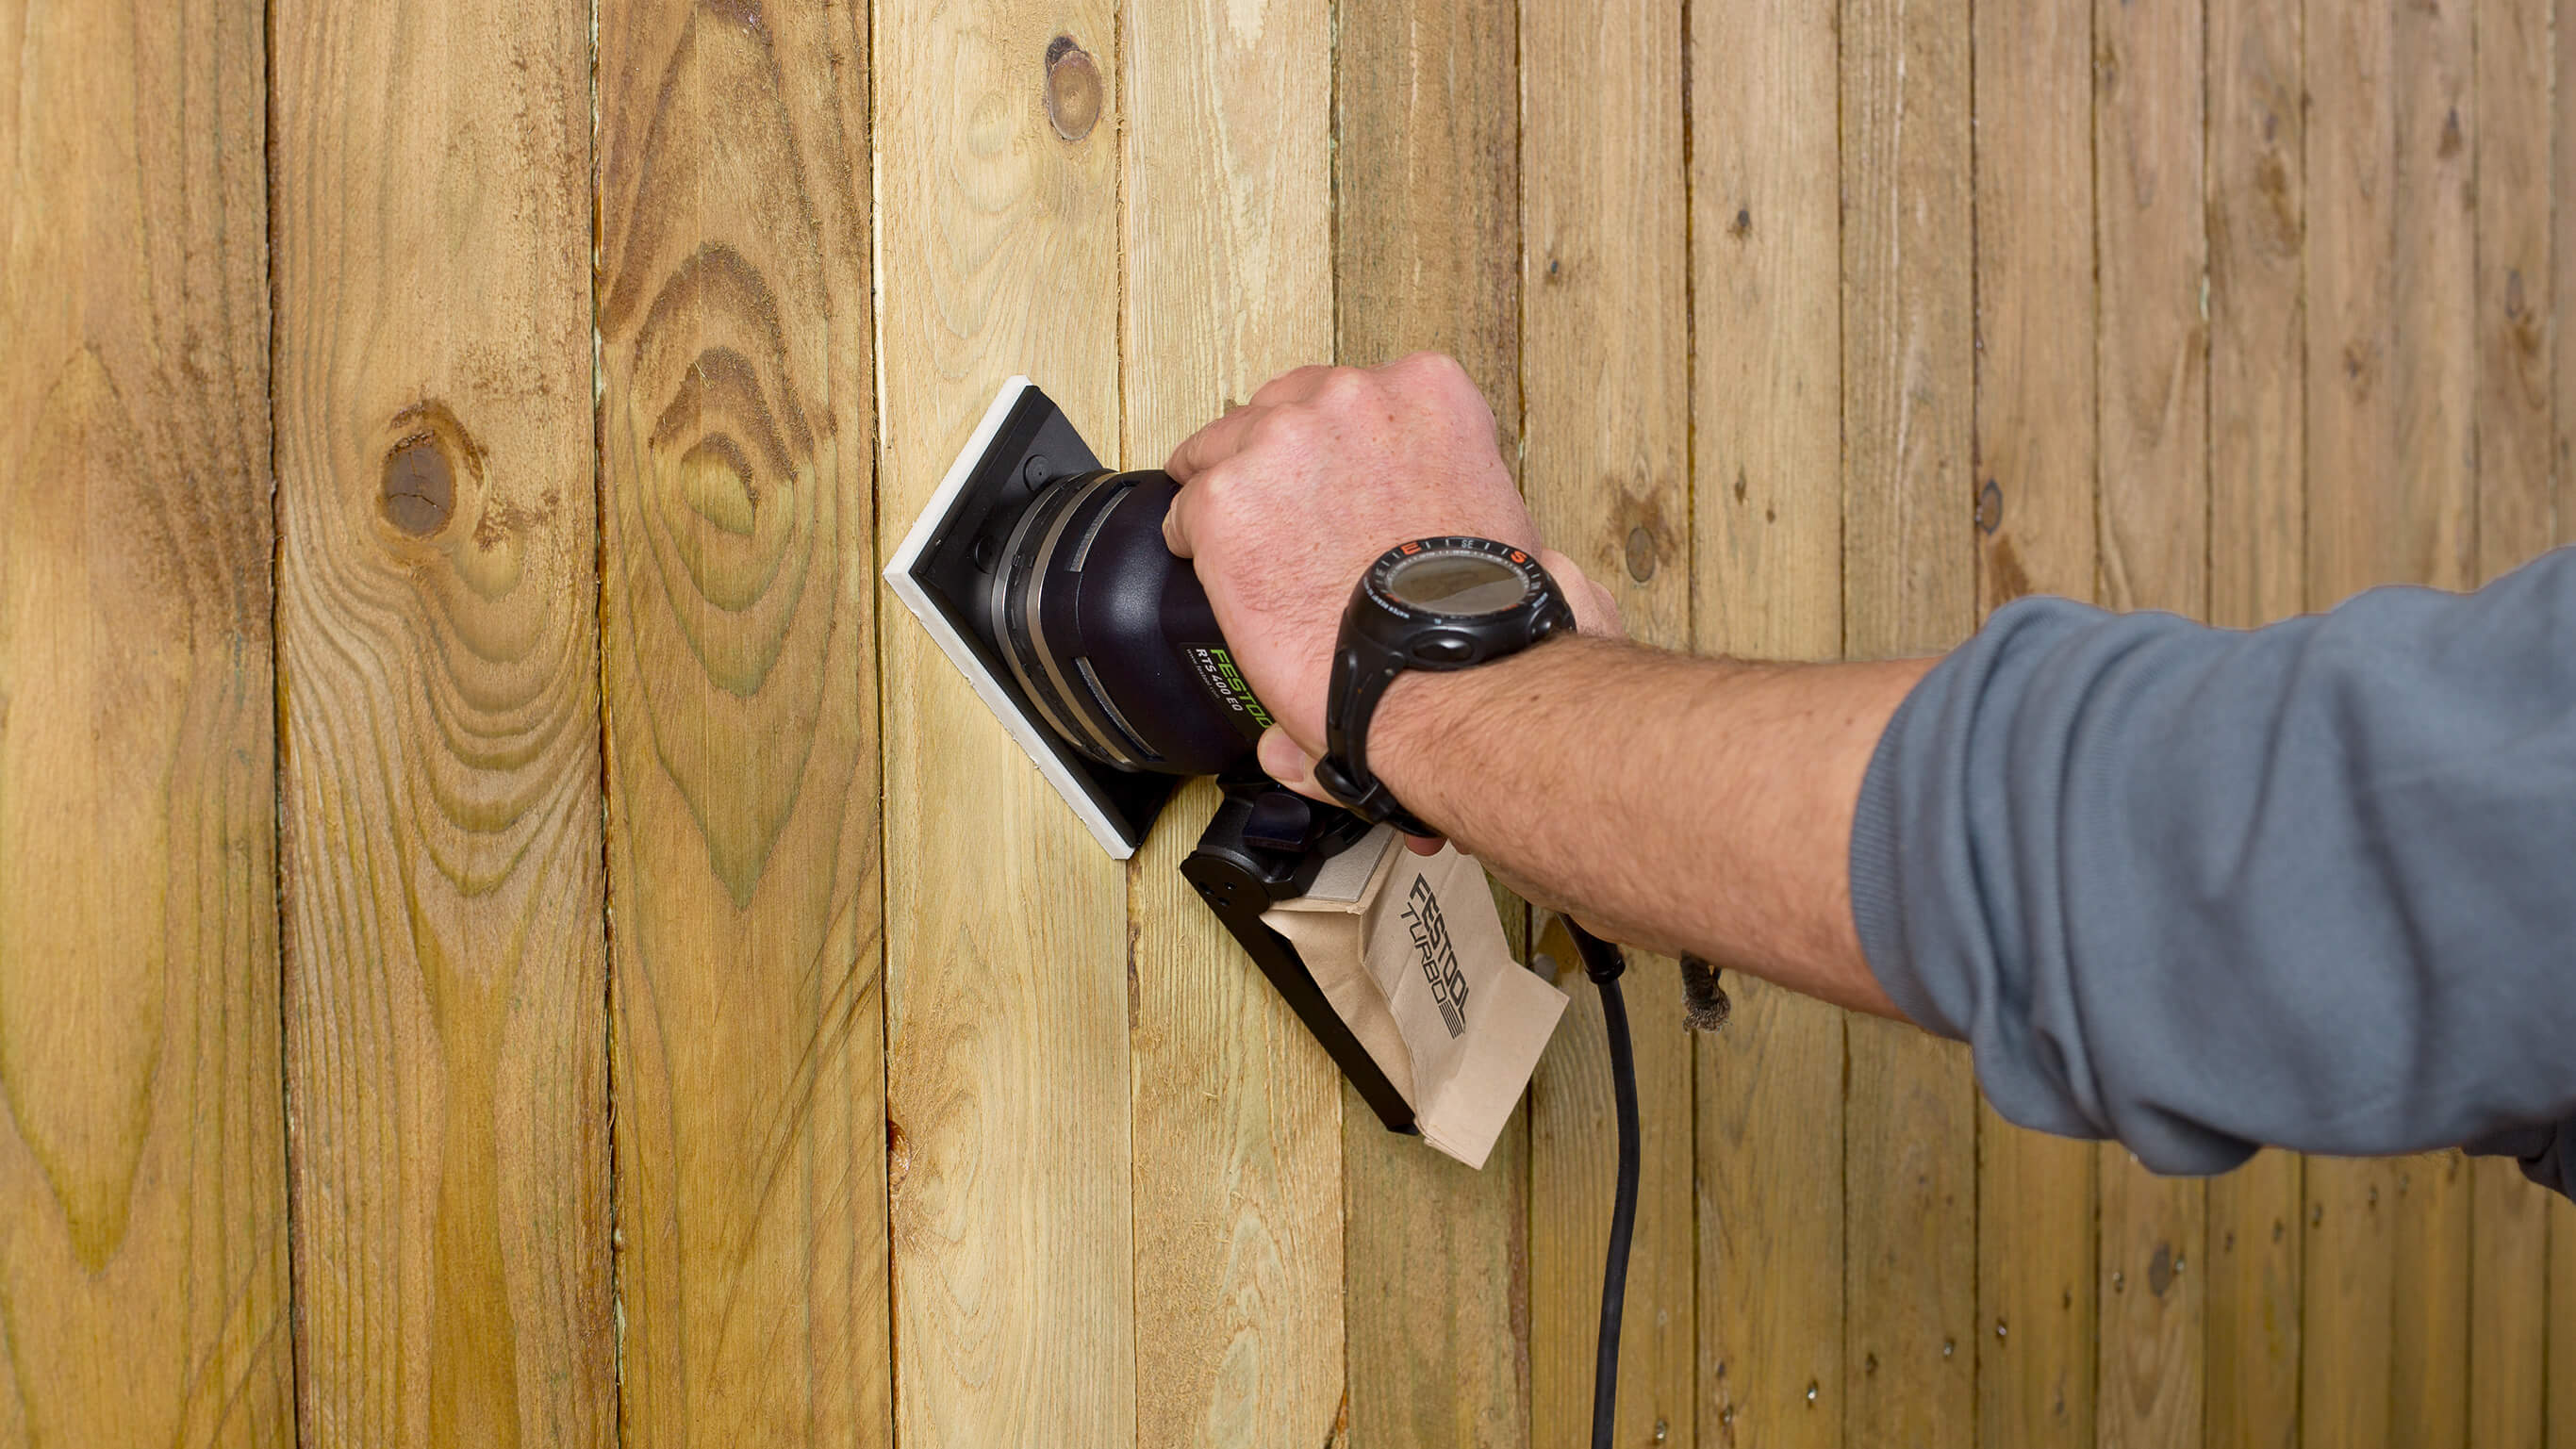 Sanding a wooden fence